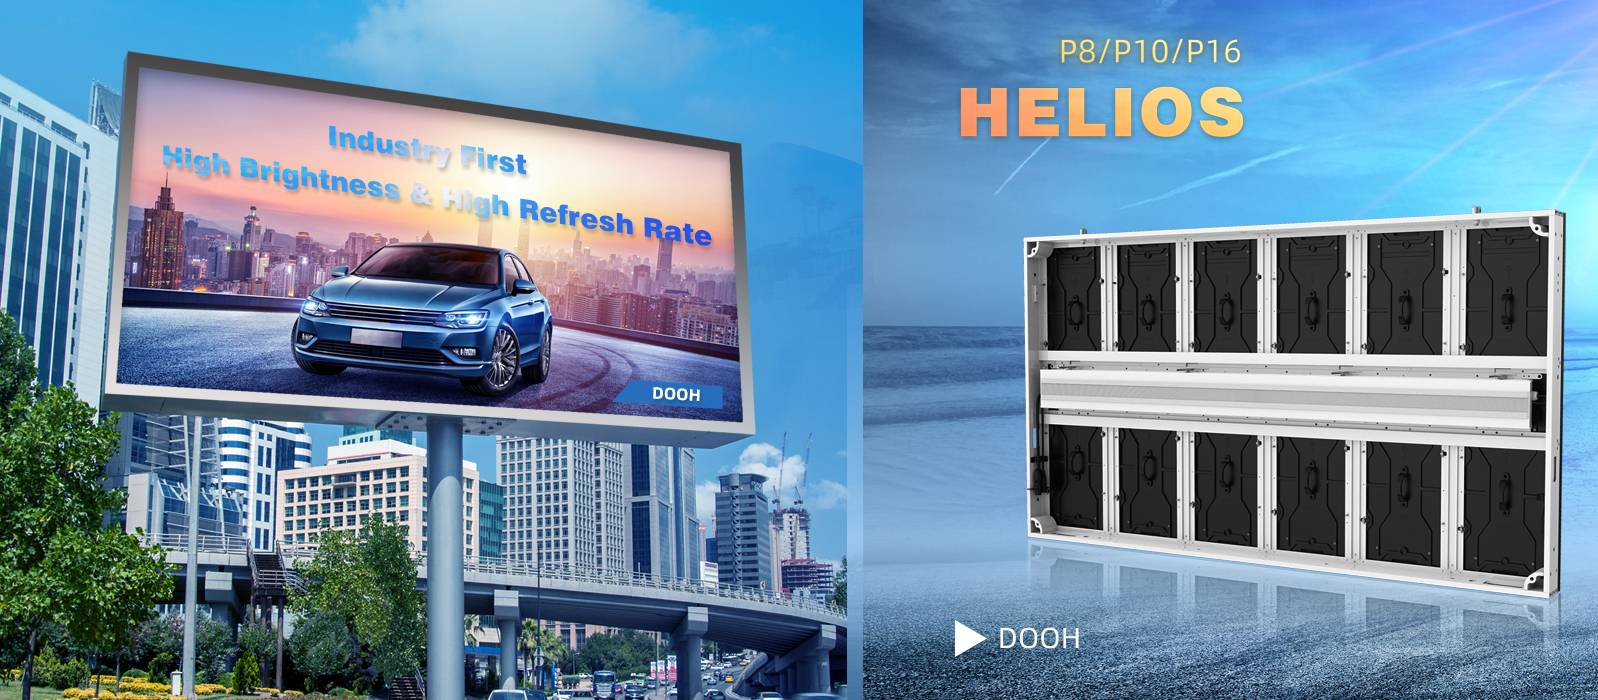 Helios - Outdoor Fixed LED Display